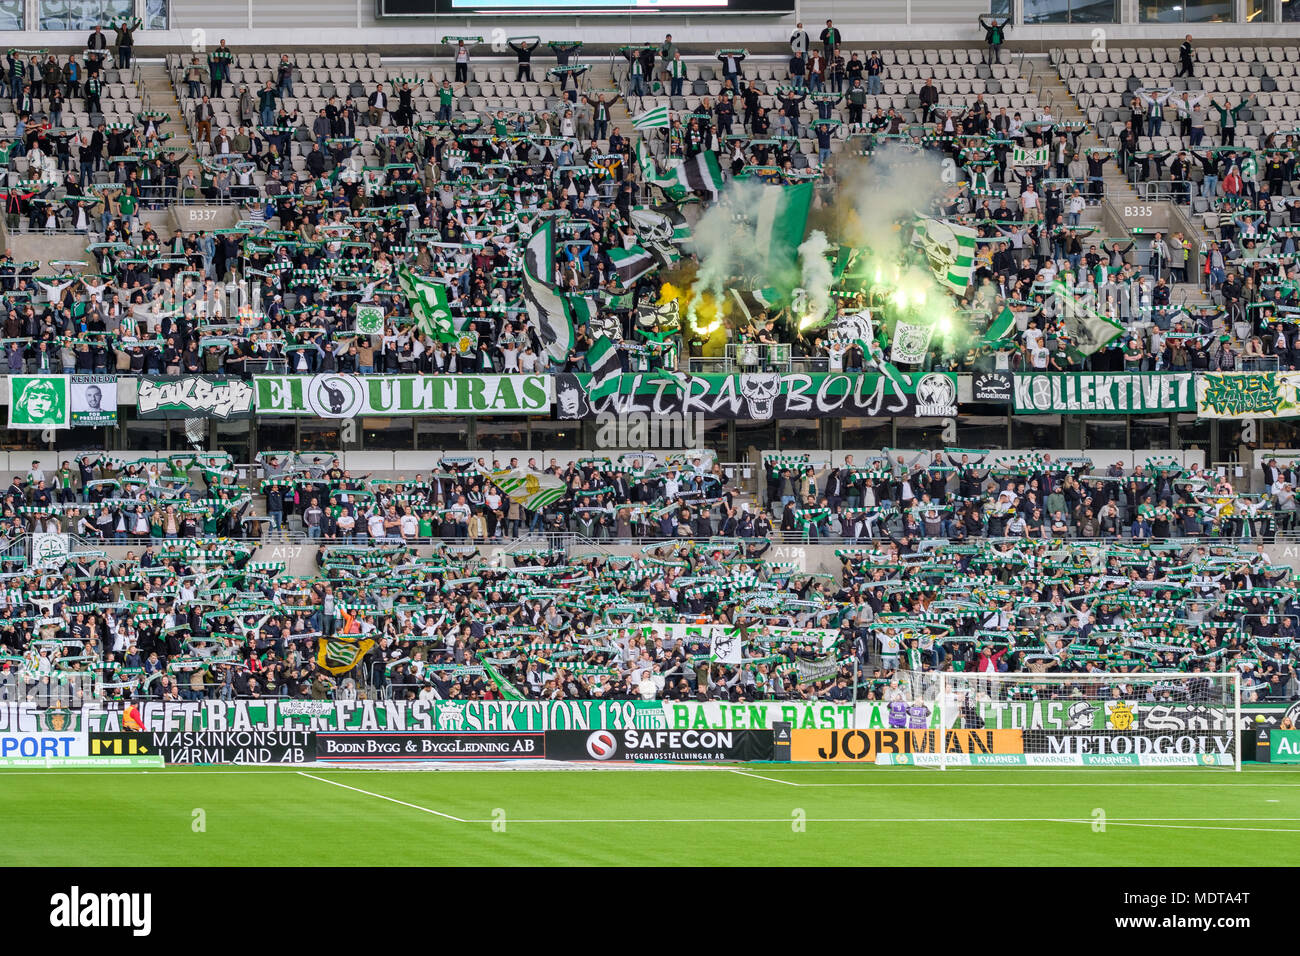 Hammarby fans at Tele2 arena  in Stockholm seating duringa  football game - Stock Image